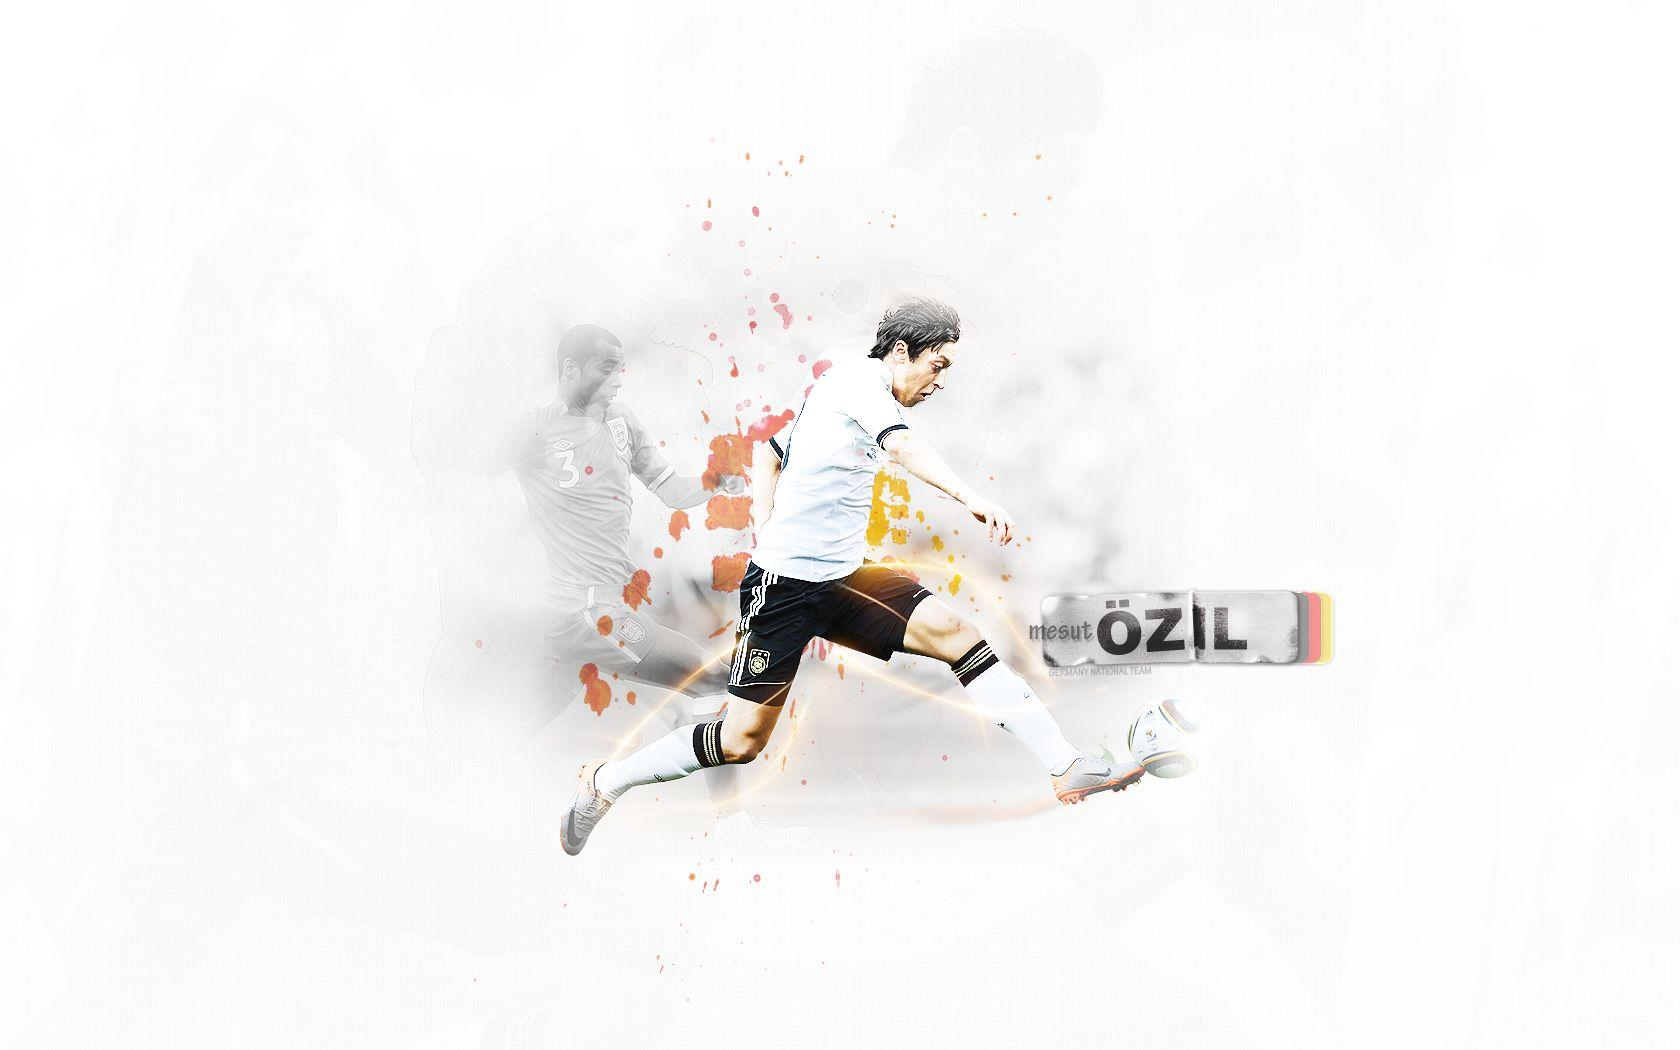 Ozil Wallpapers